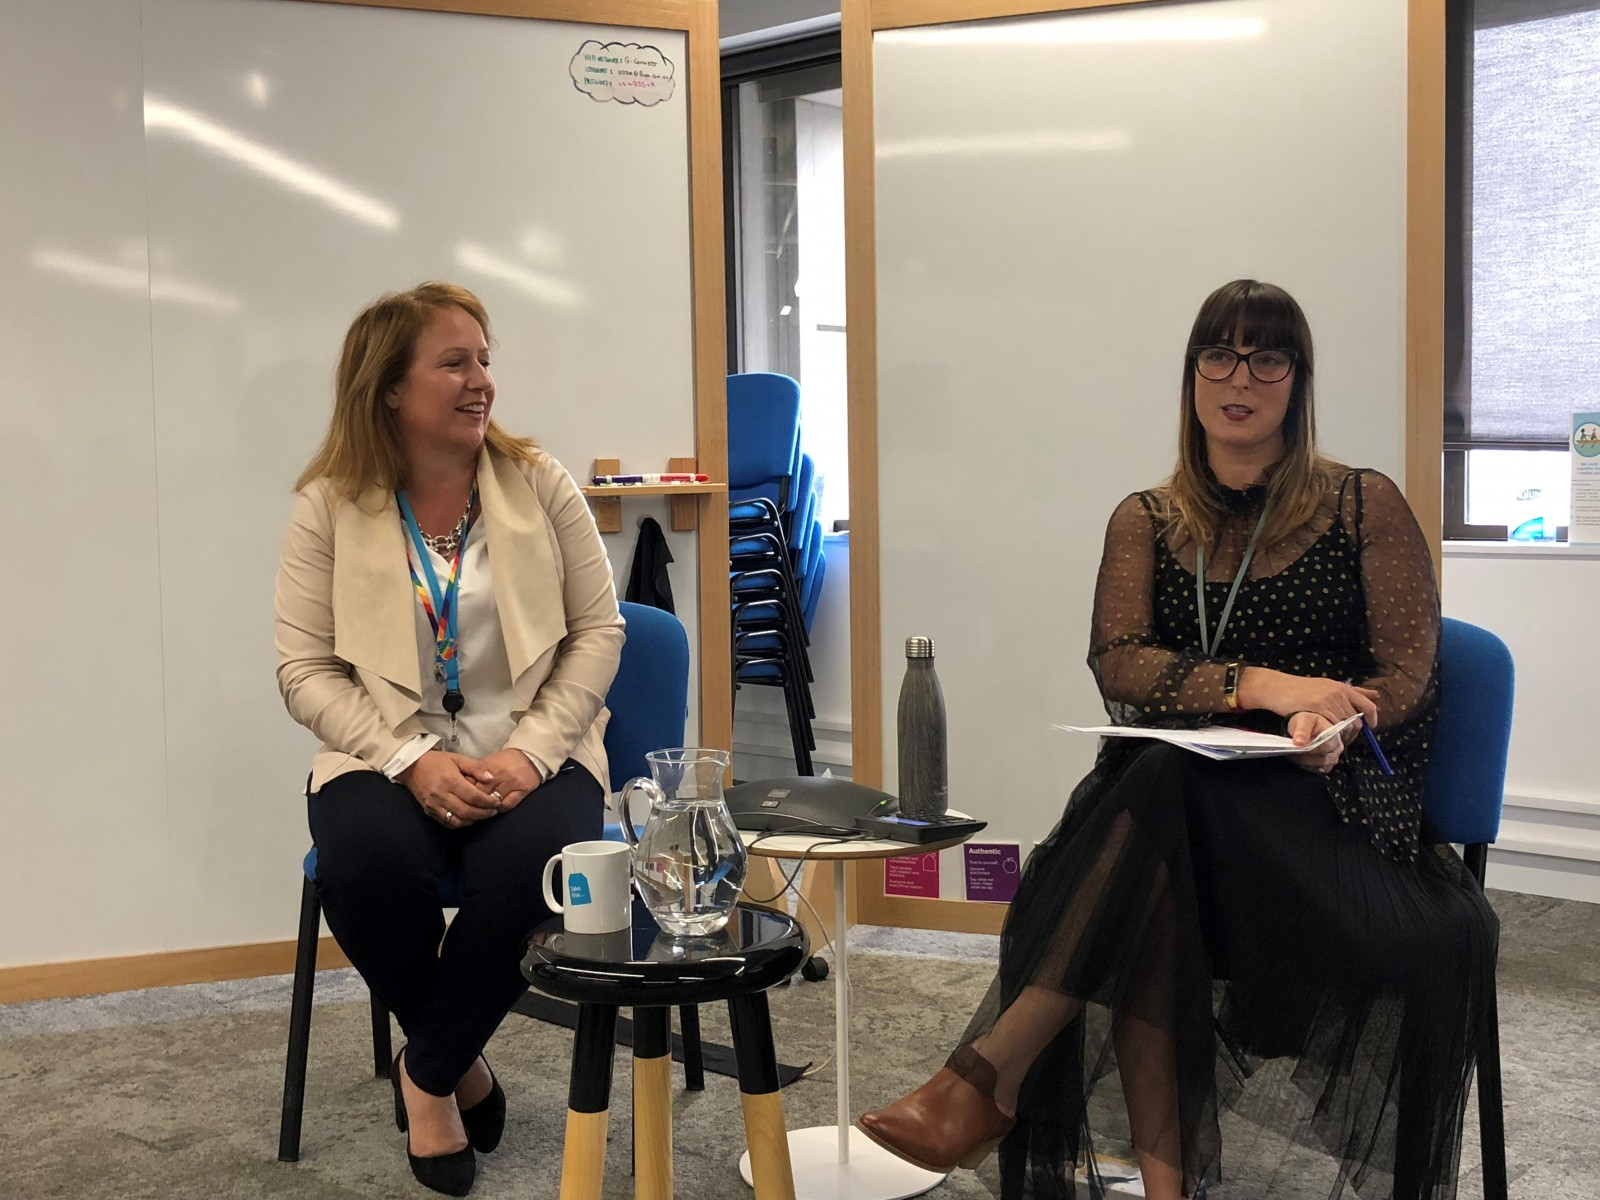 Networking Series with Bupa's Global Chief Customer and Corporate Affairs Officer, Alex Cole and Bupa's Head of Change and Capability, Stephanie Carman